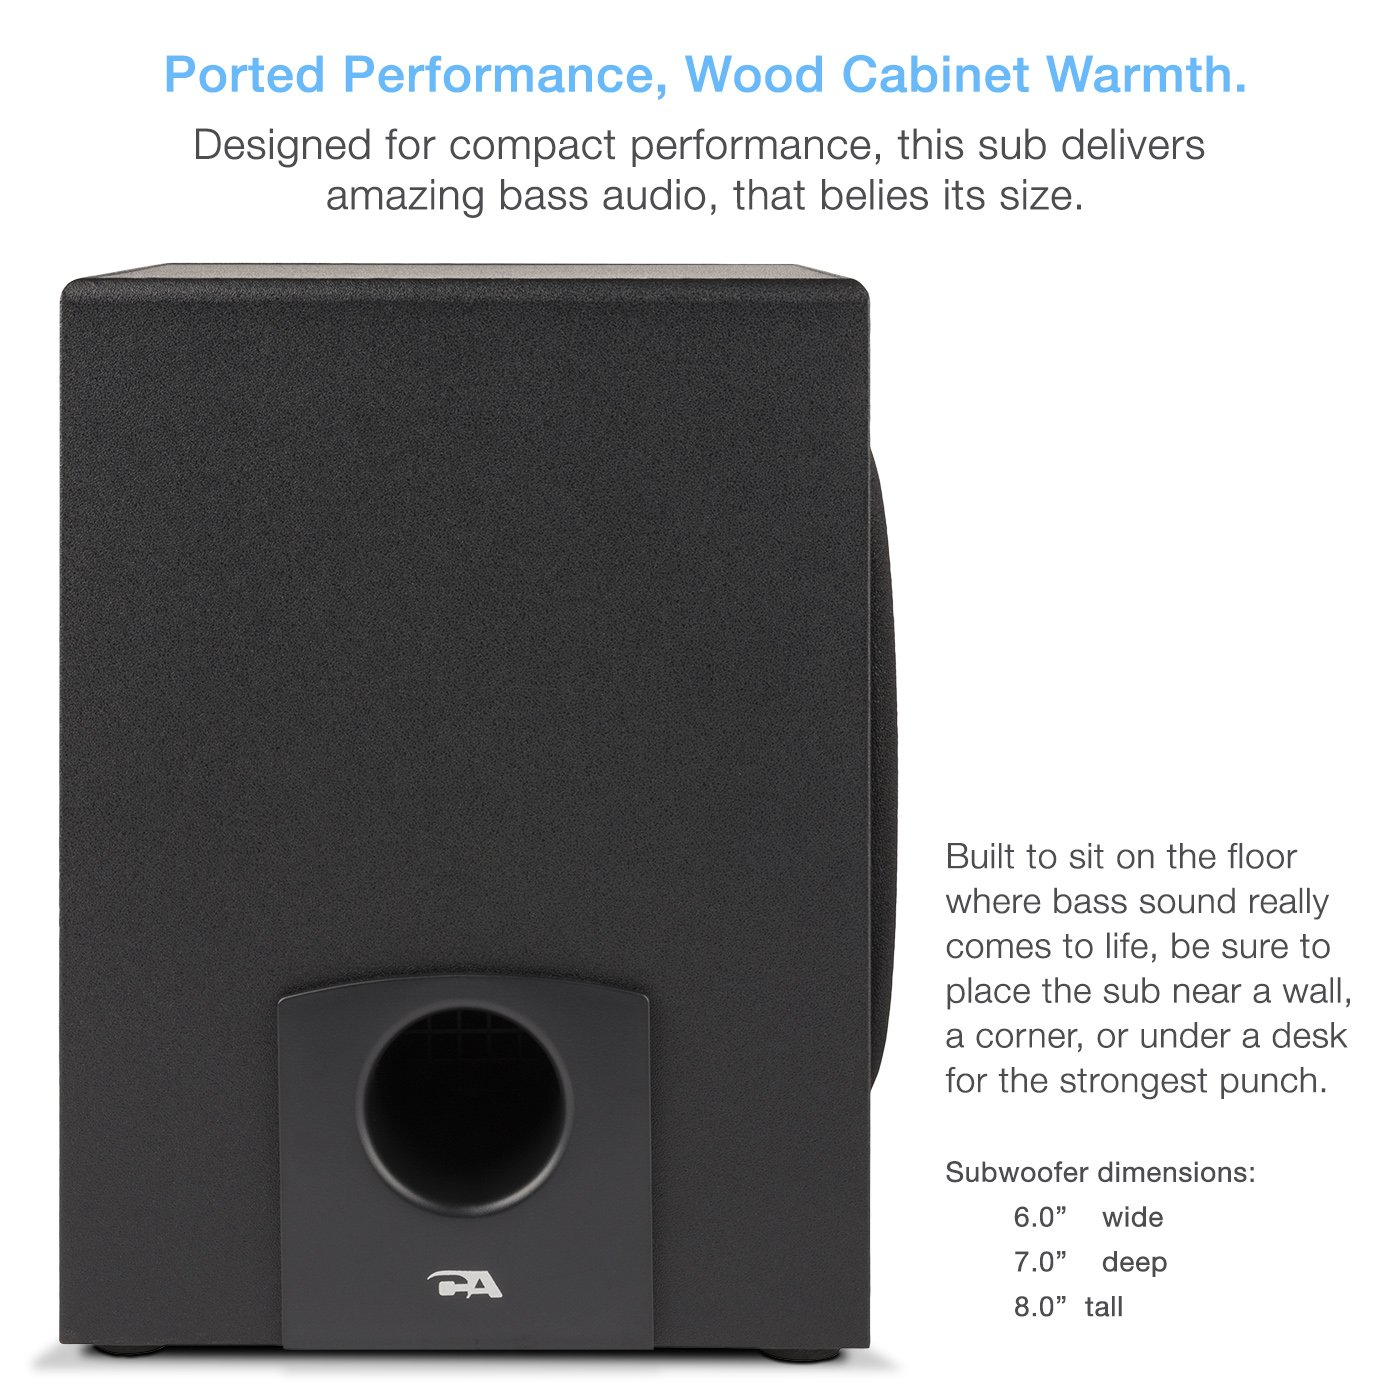 Cyber Acoustics 2.1 Subwoofer Speaker System with 18W of Power – Great for Music, Movies, Gaming, and Multimedia Computer Laptops (CA-3090) by Cyber Acoustics (Image #4)